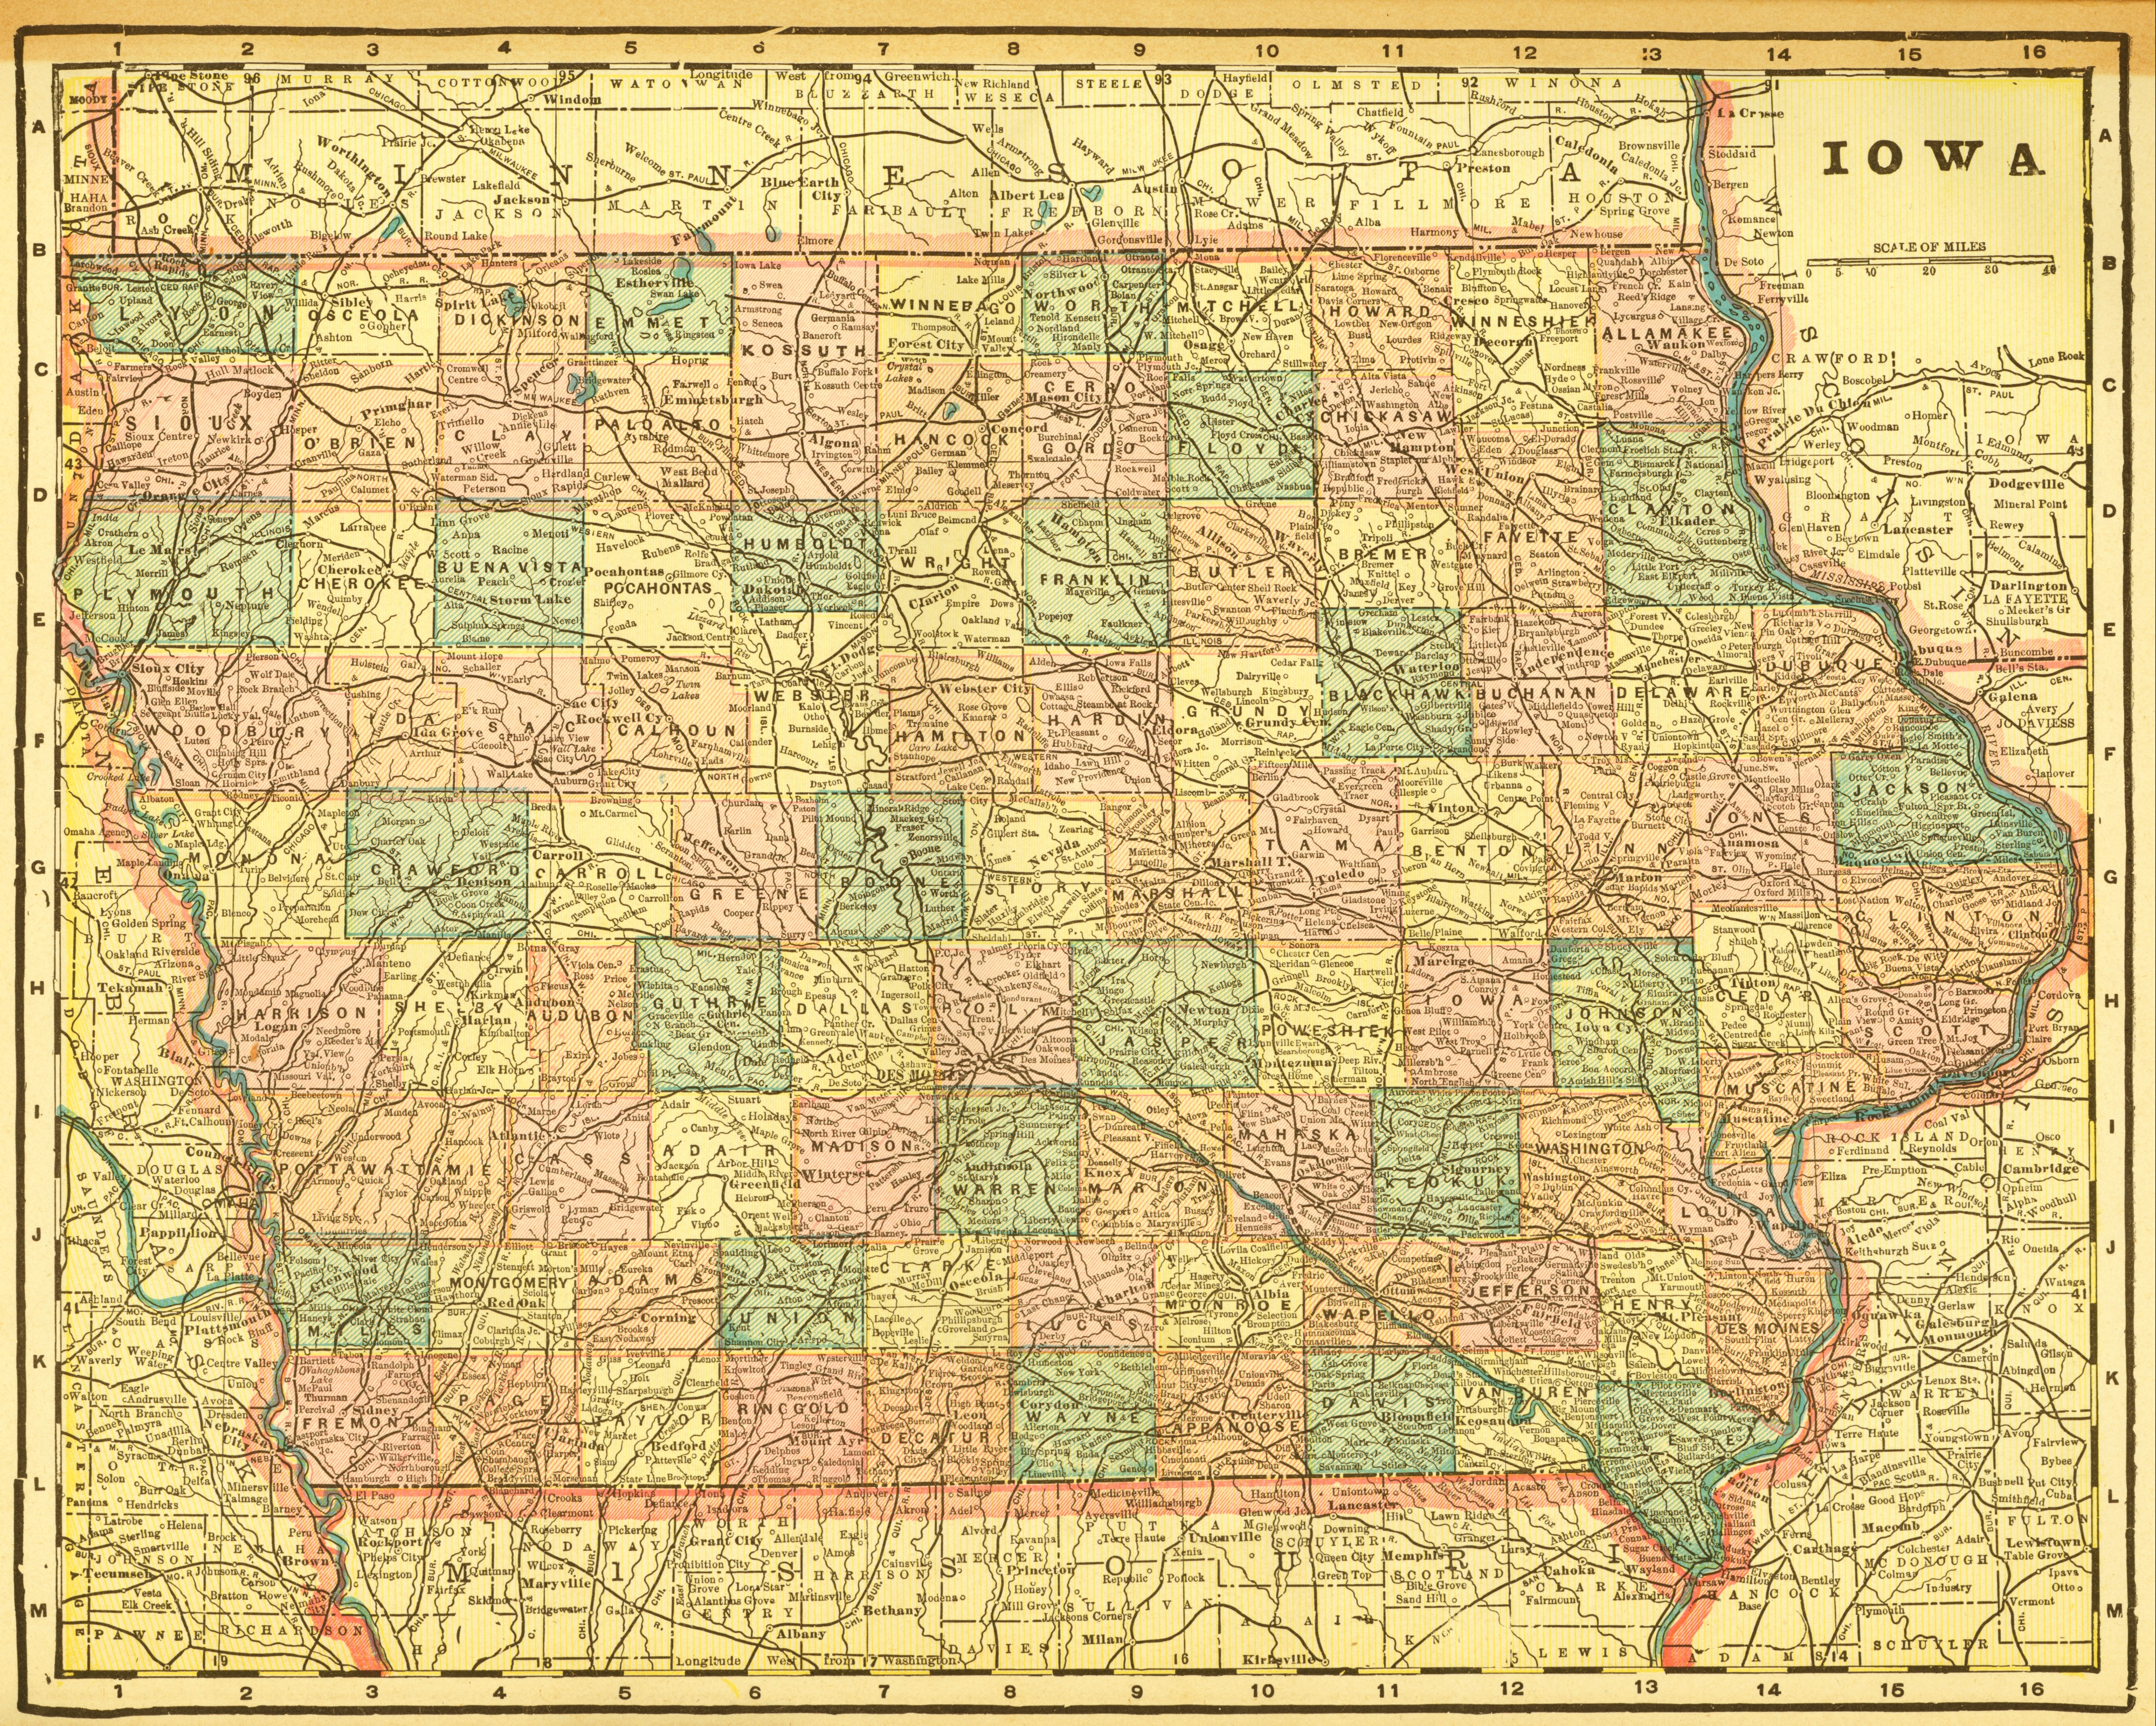 Crams Unrivaled Atlas Of The World Ames Historical Society - Map of iowa towns